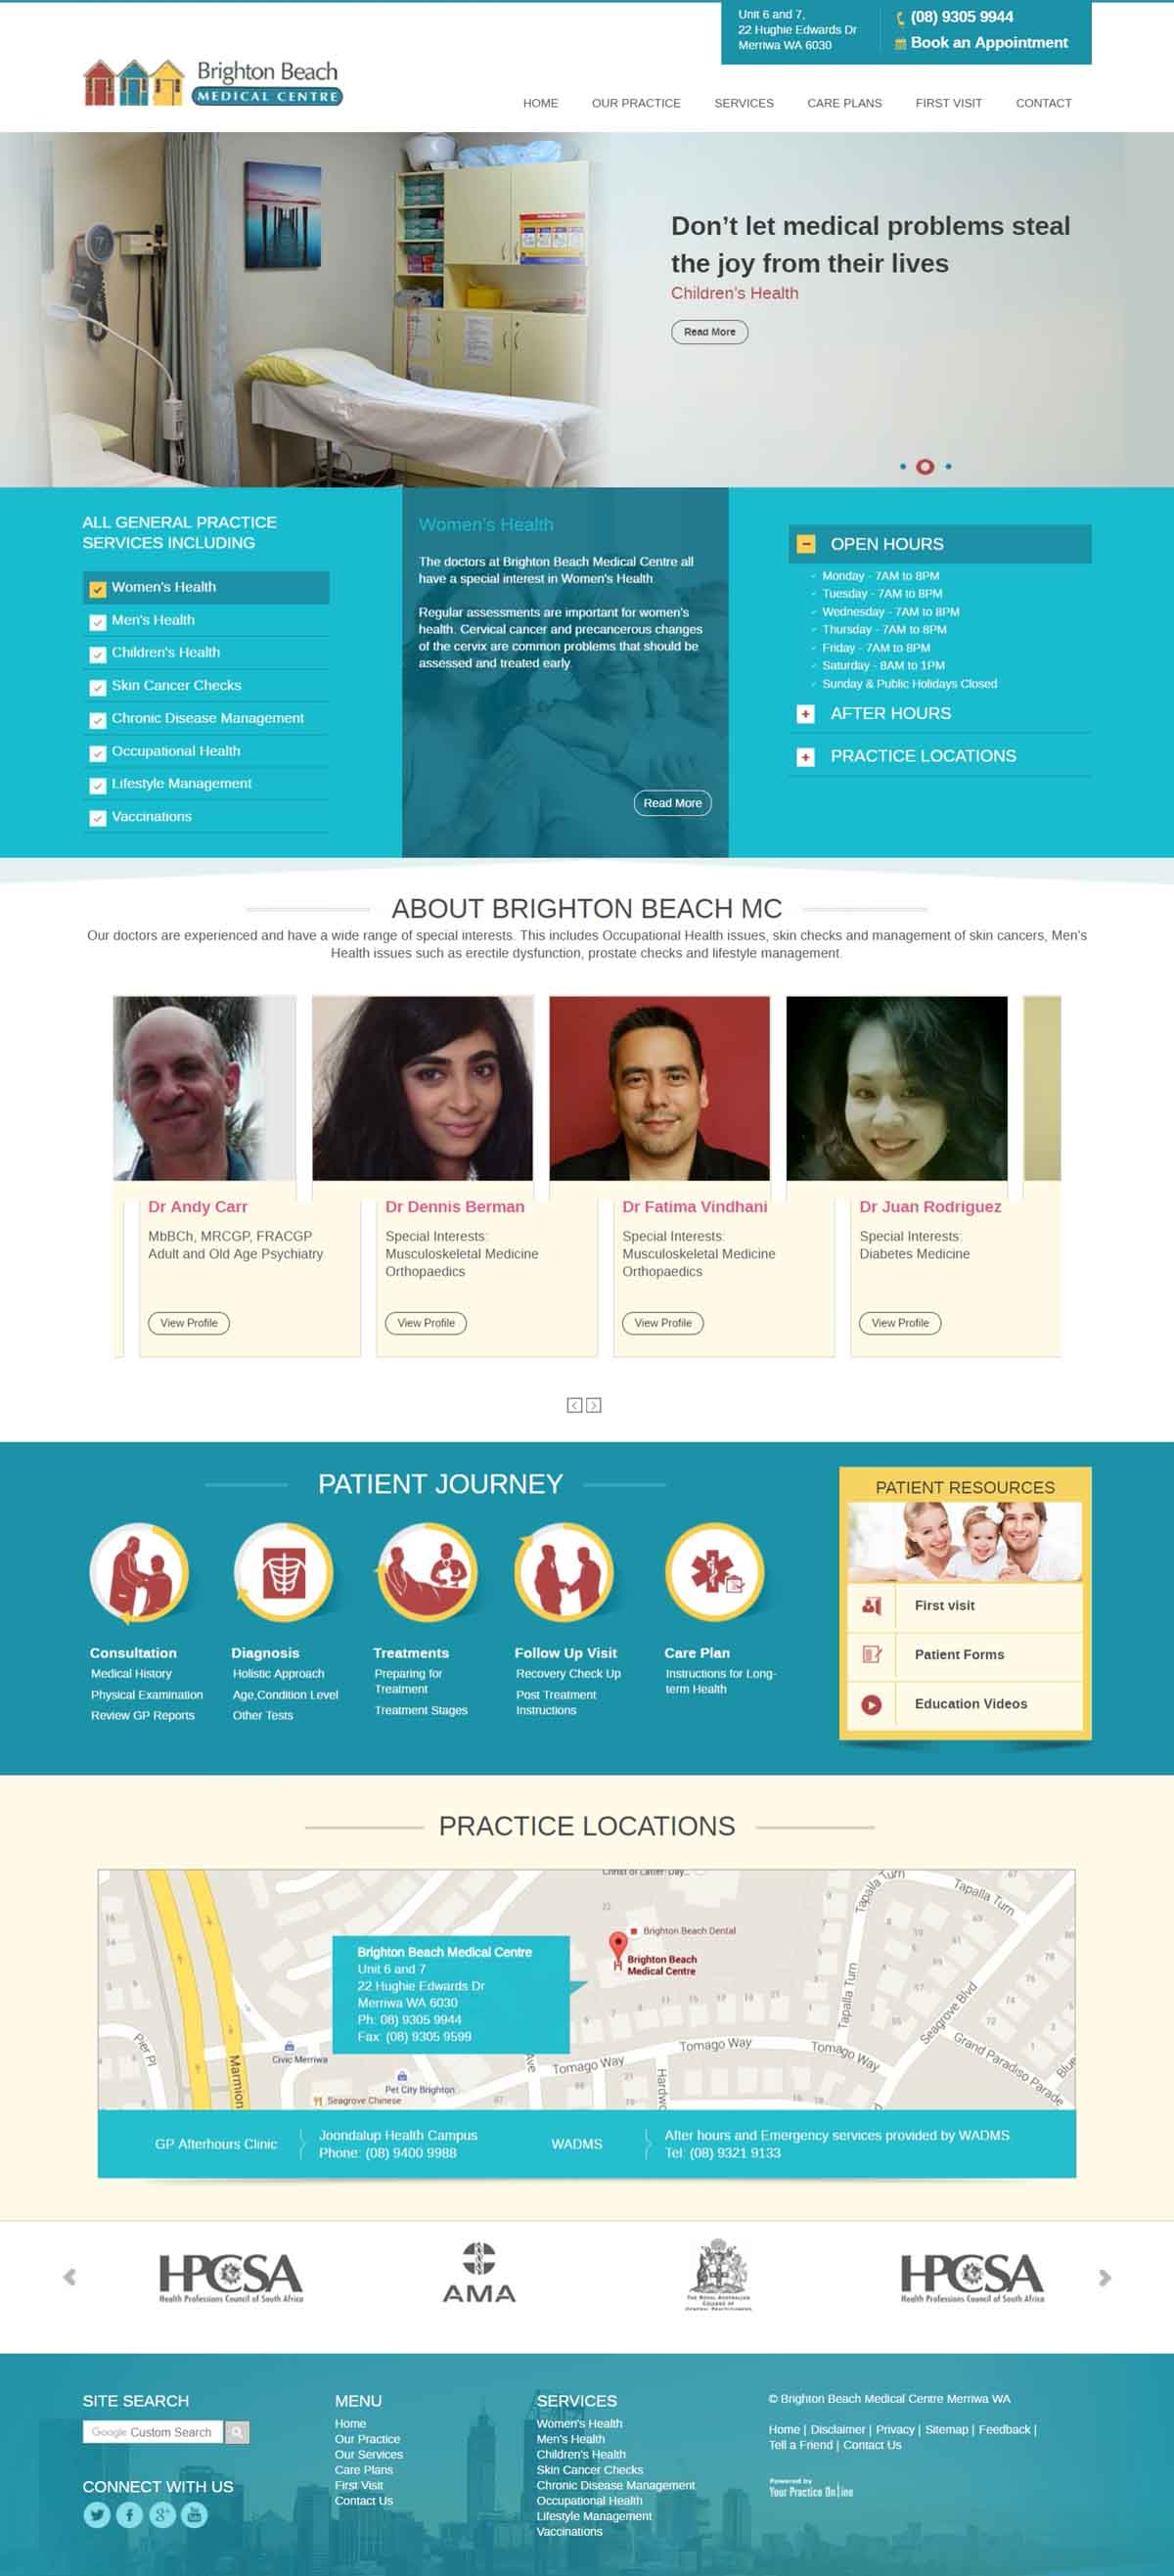 Medical Centre General Practice Website